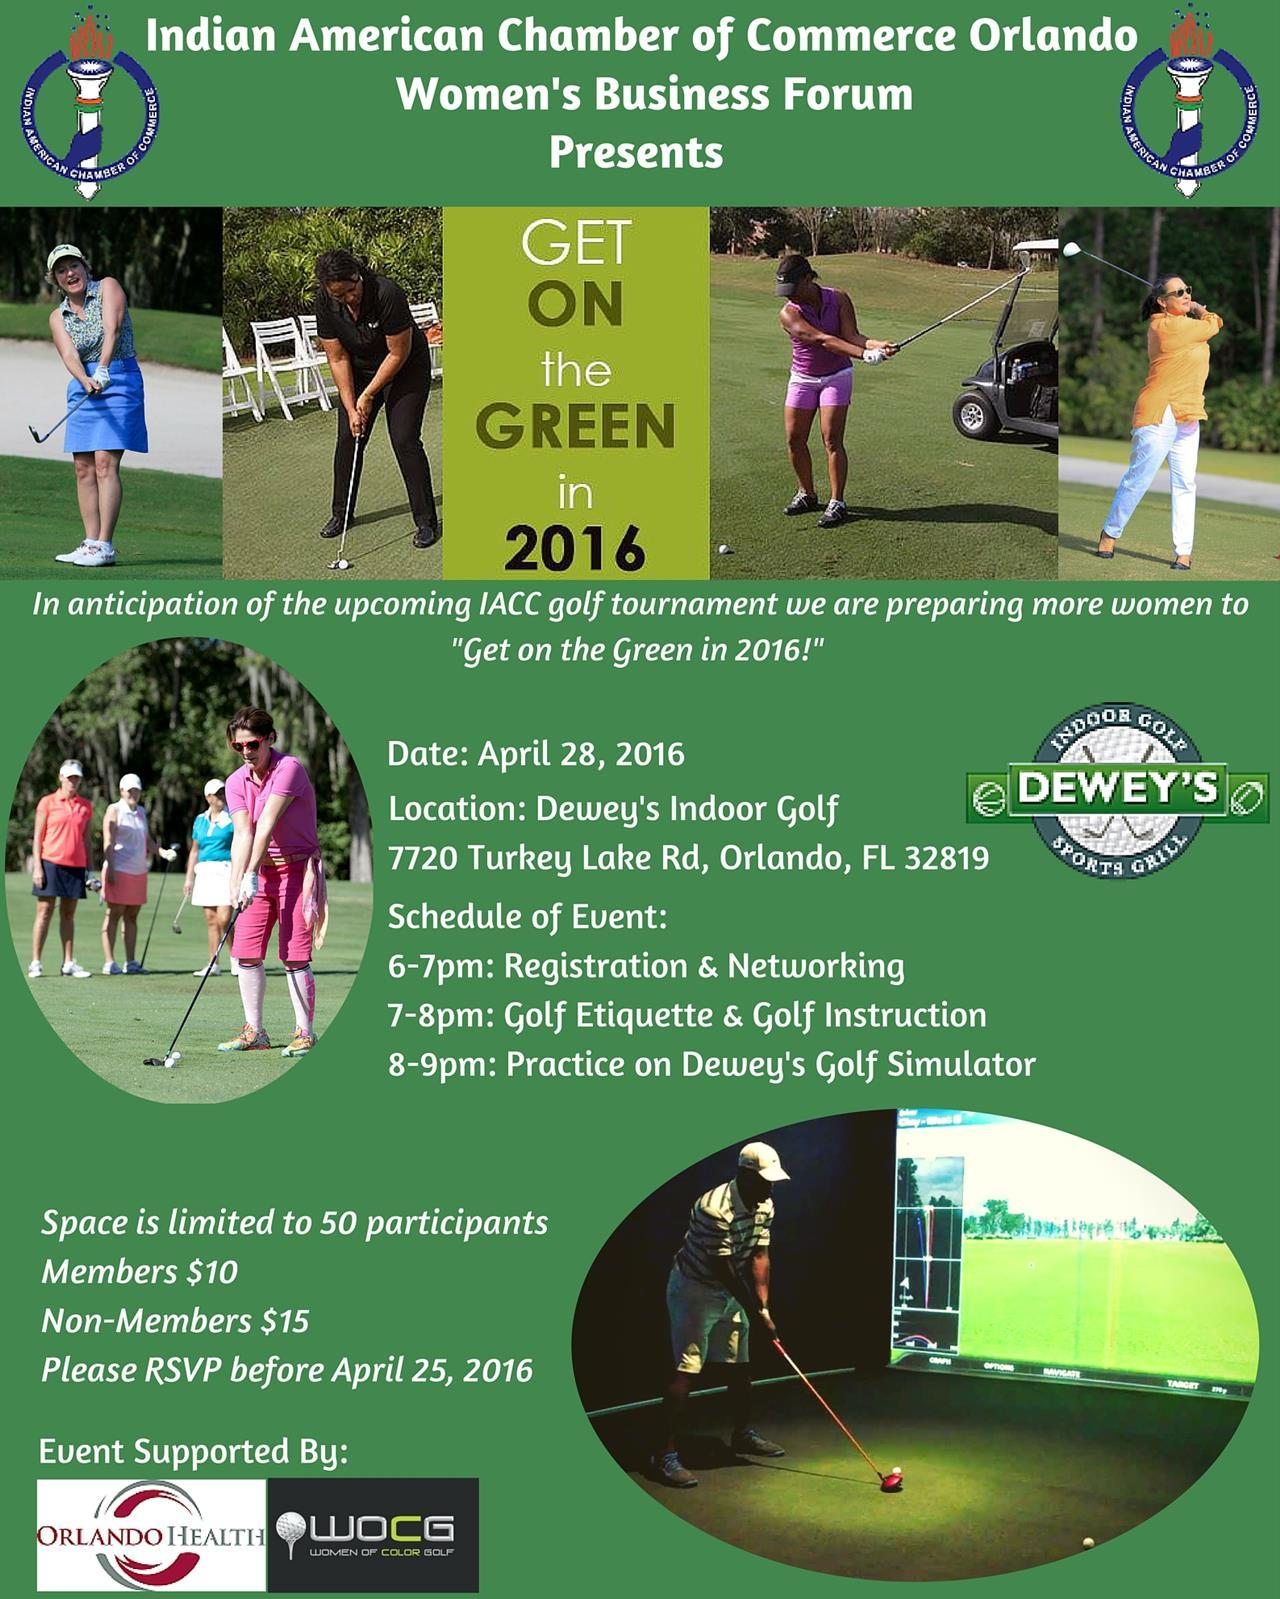 042816_IACC Get on the Green